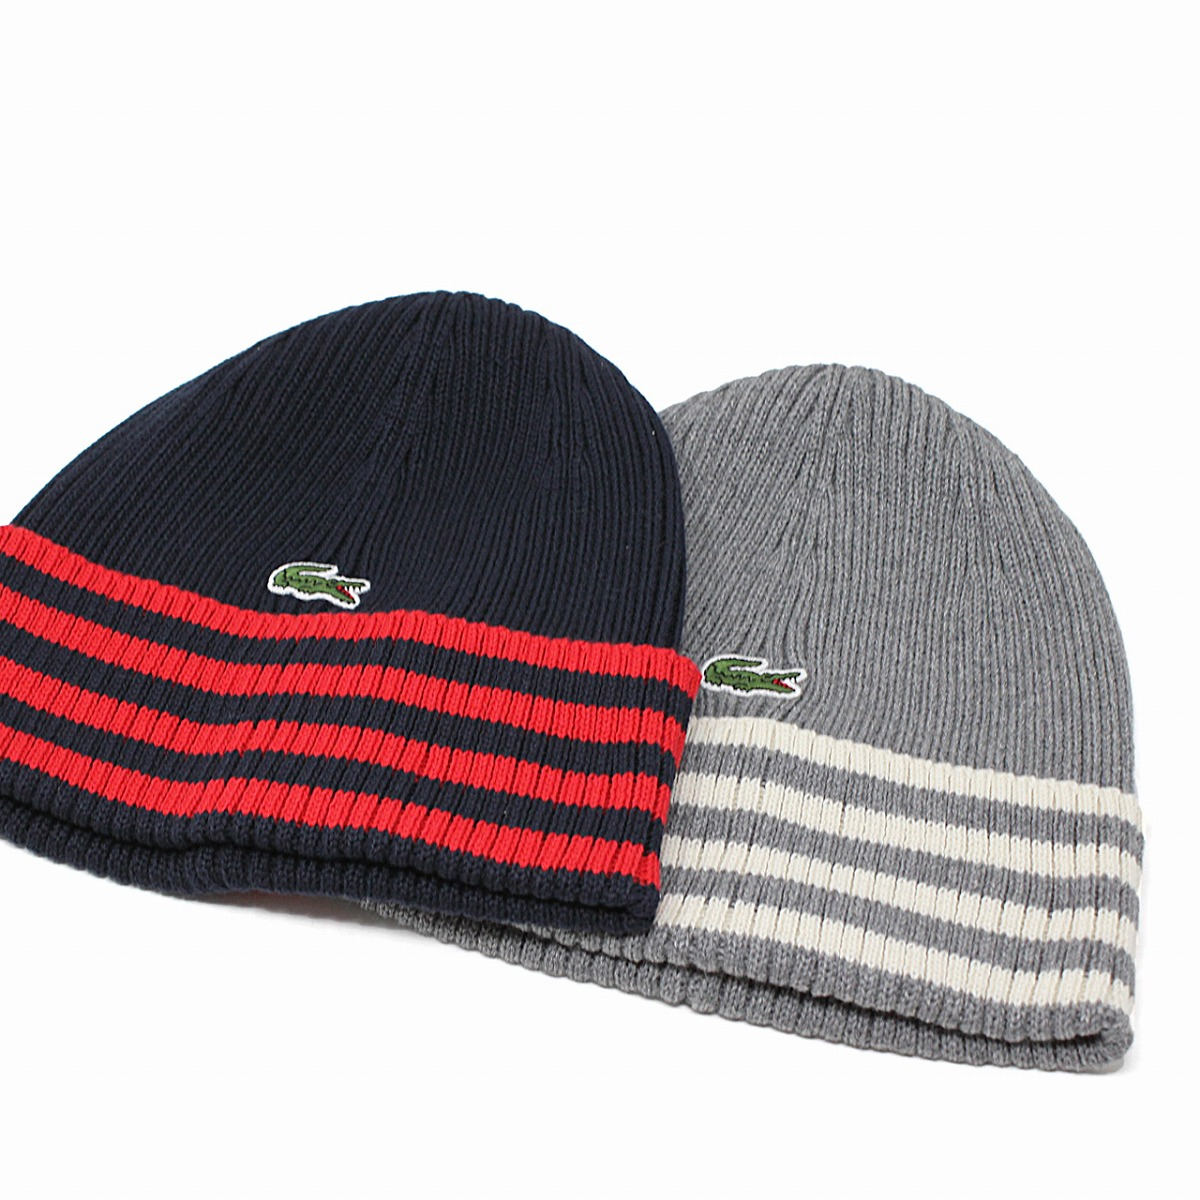 1a687d62e Product made in スポーティニットワッチワニマークブランドアウトドア LACOSTE mail order dark blue red  navy red [beanie cap] ...